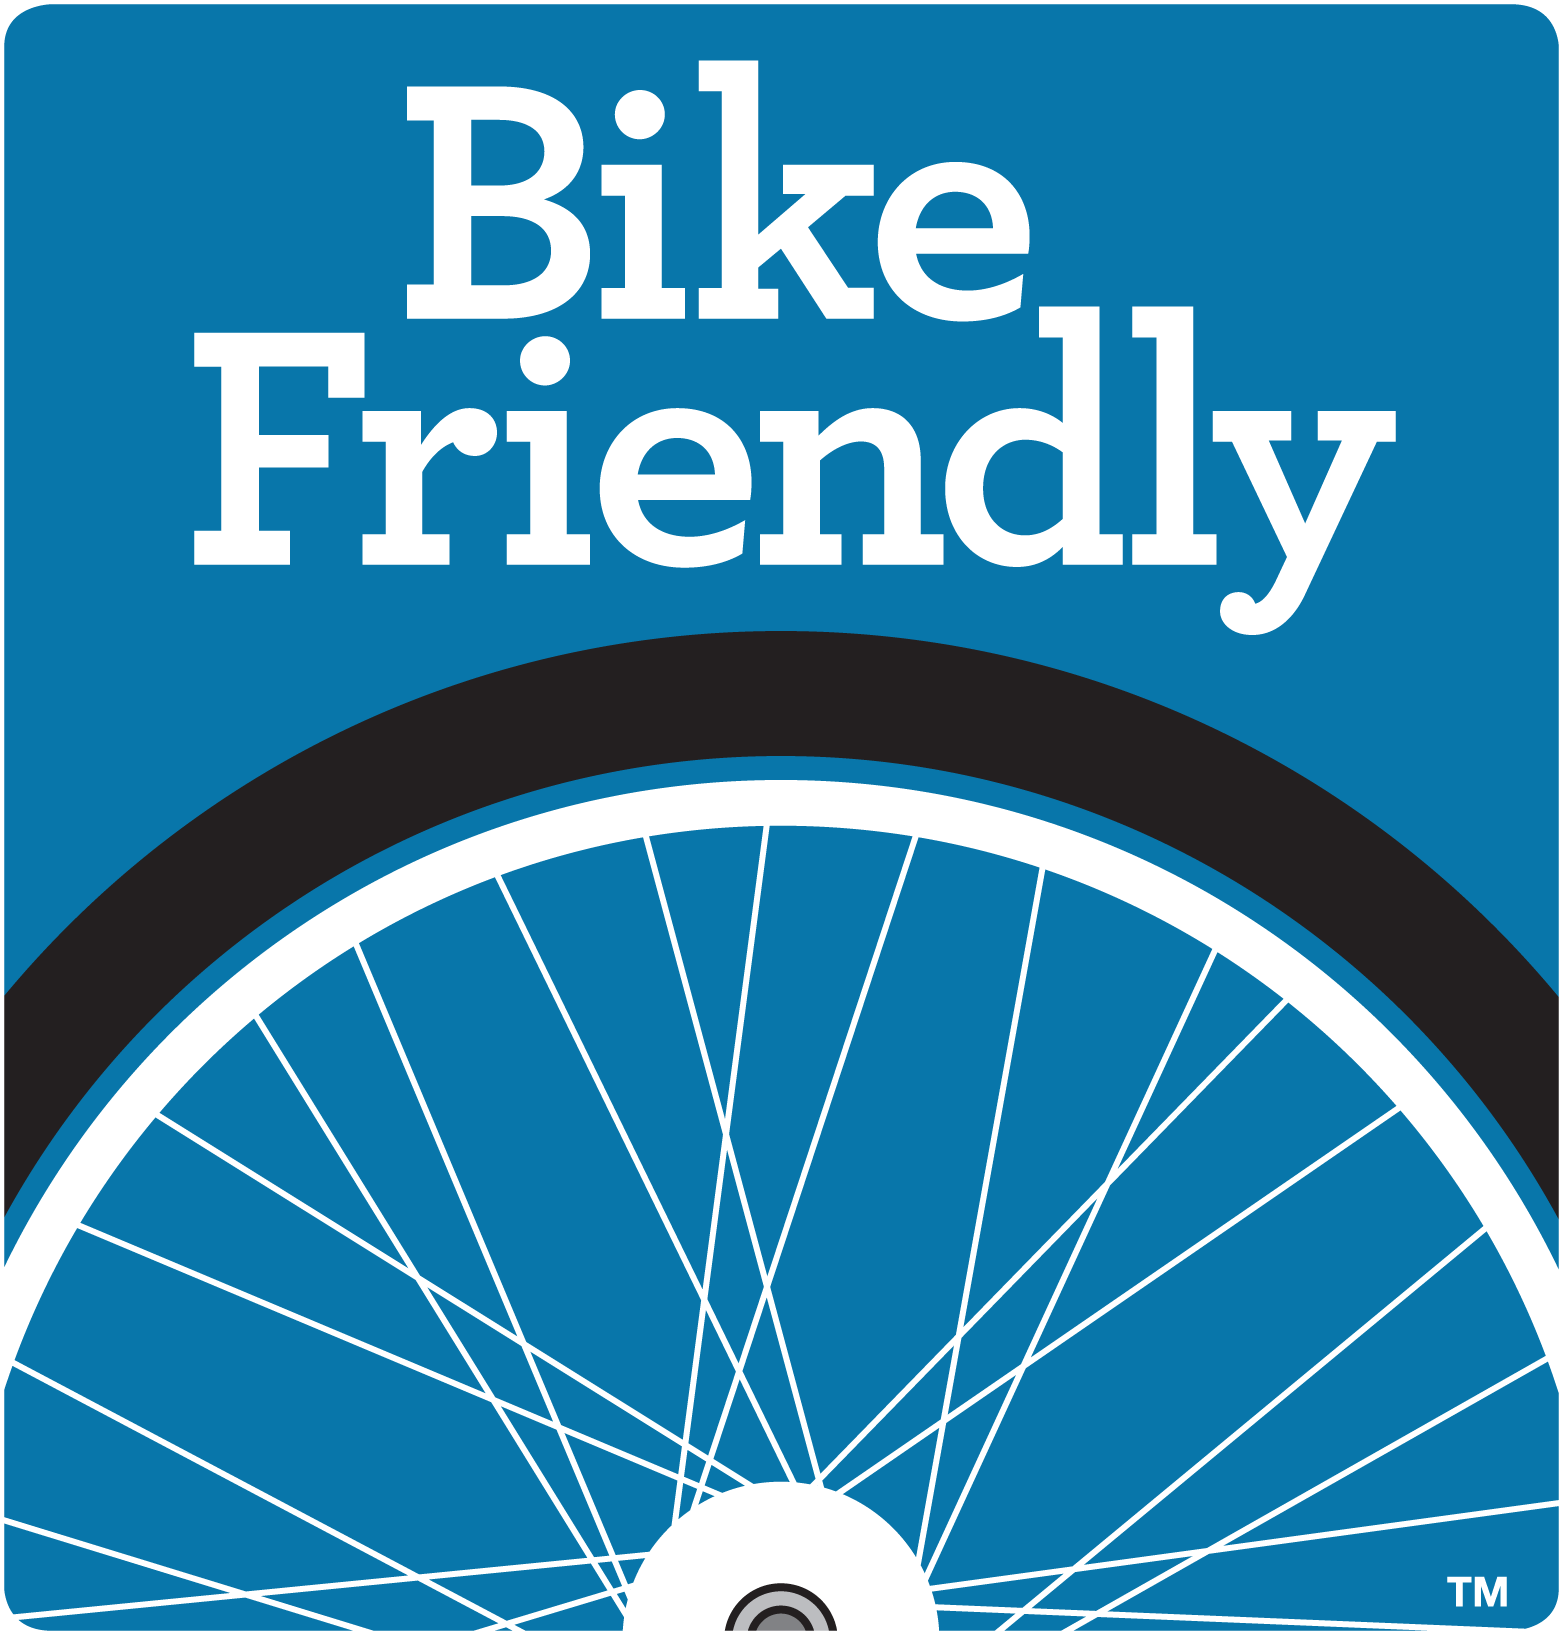 Bike Friendly Business Logo